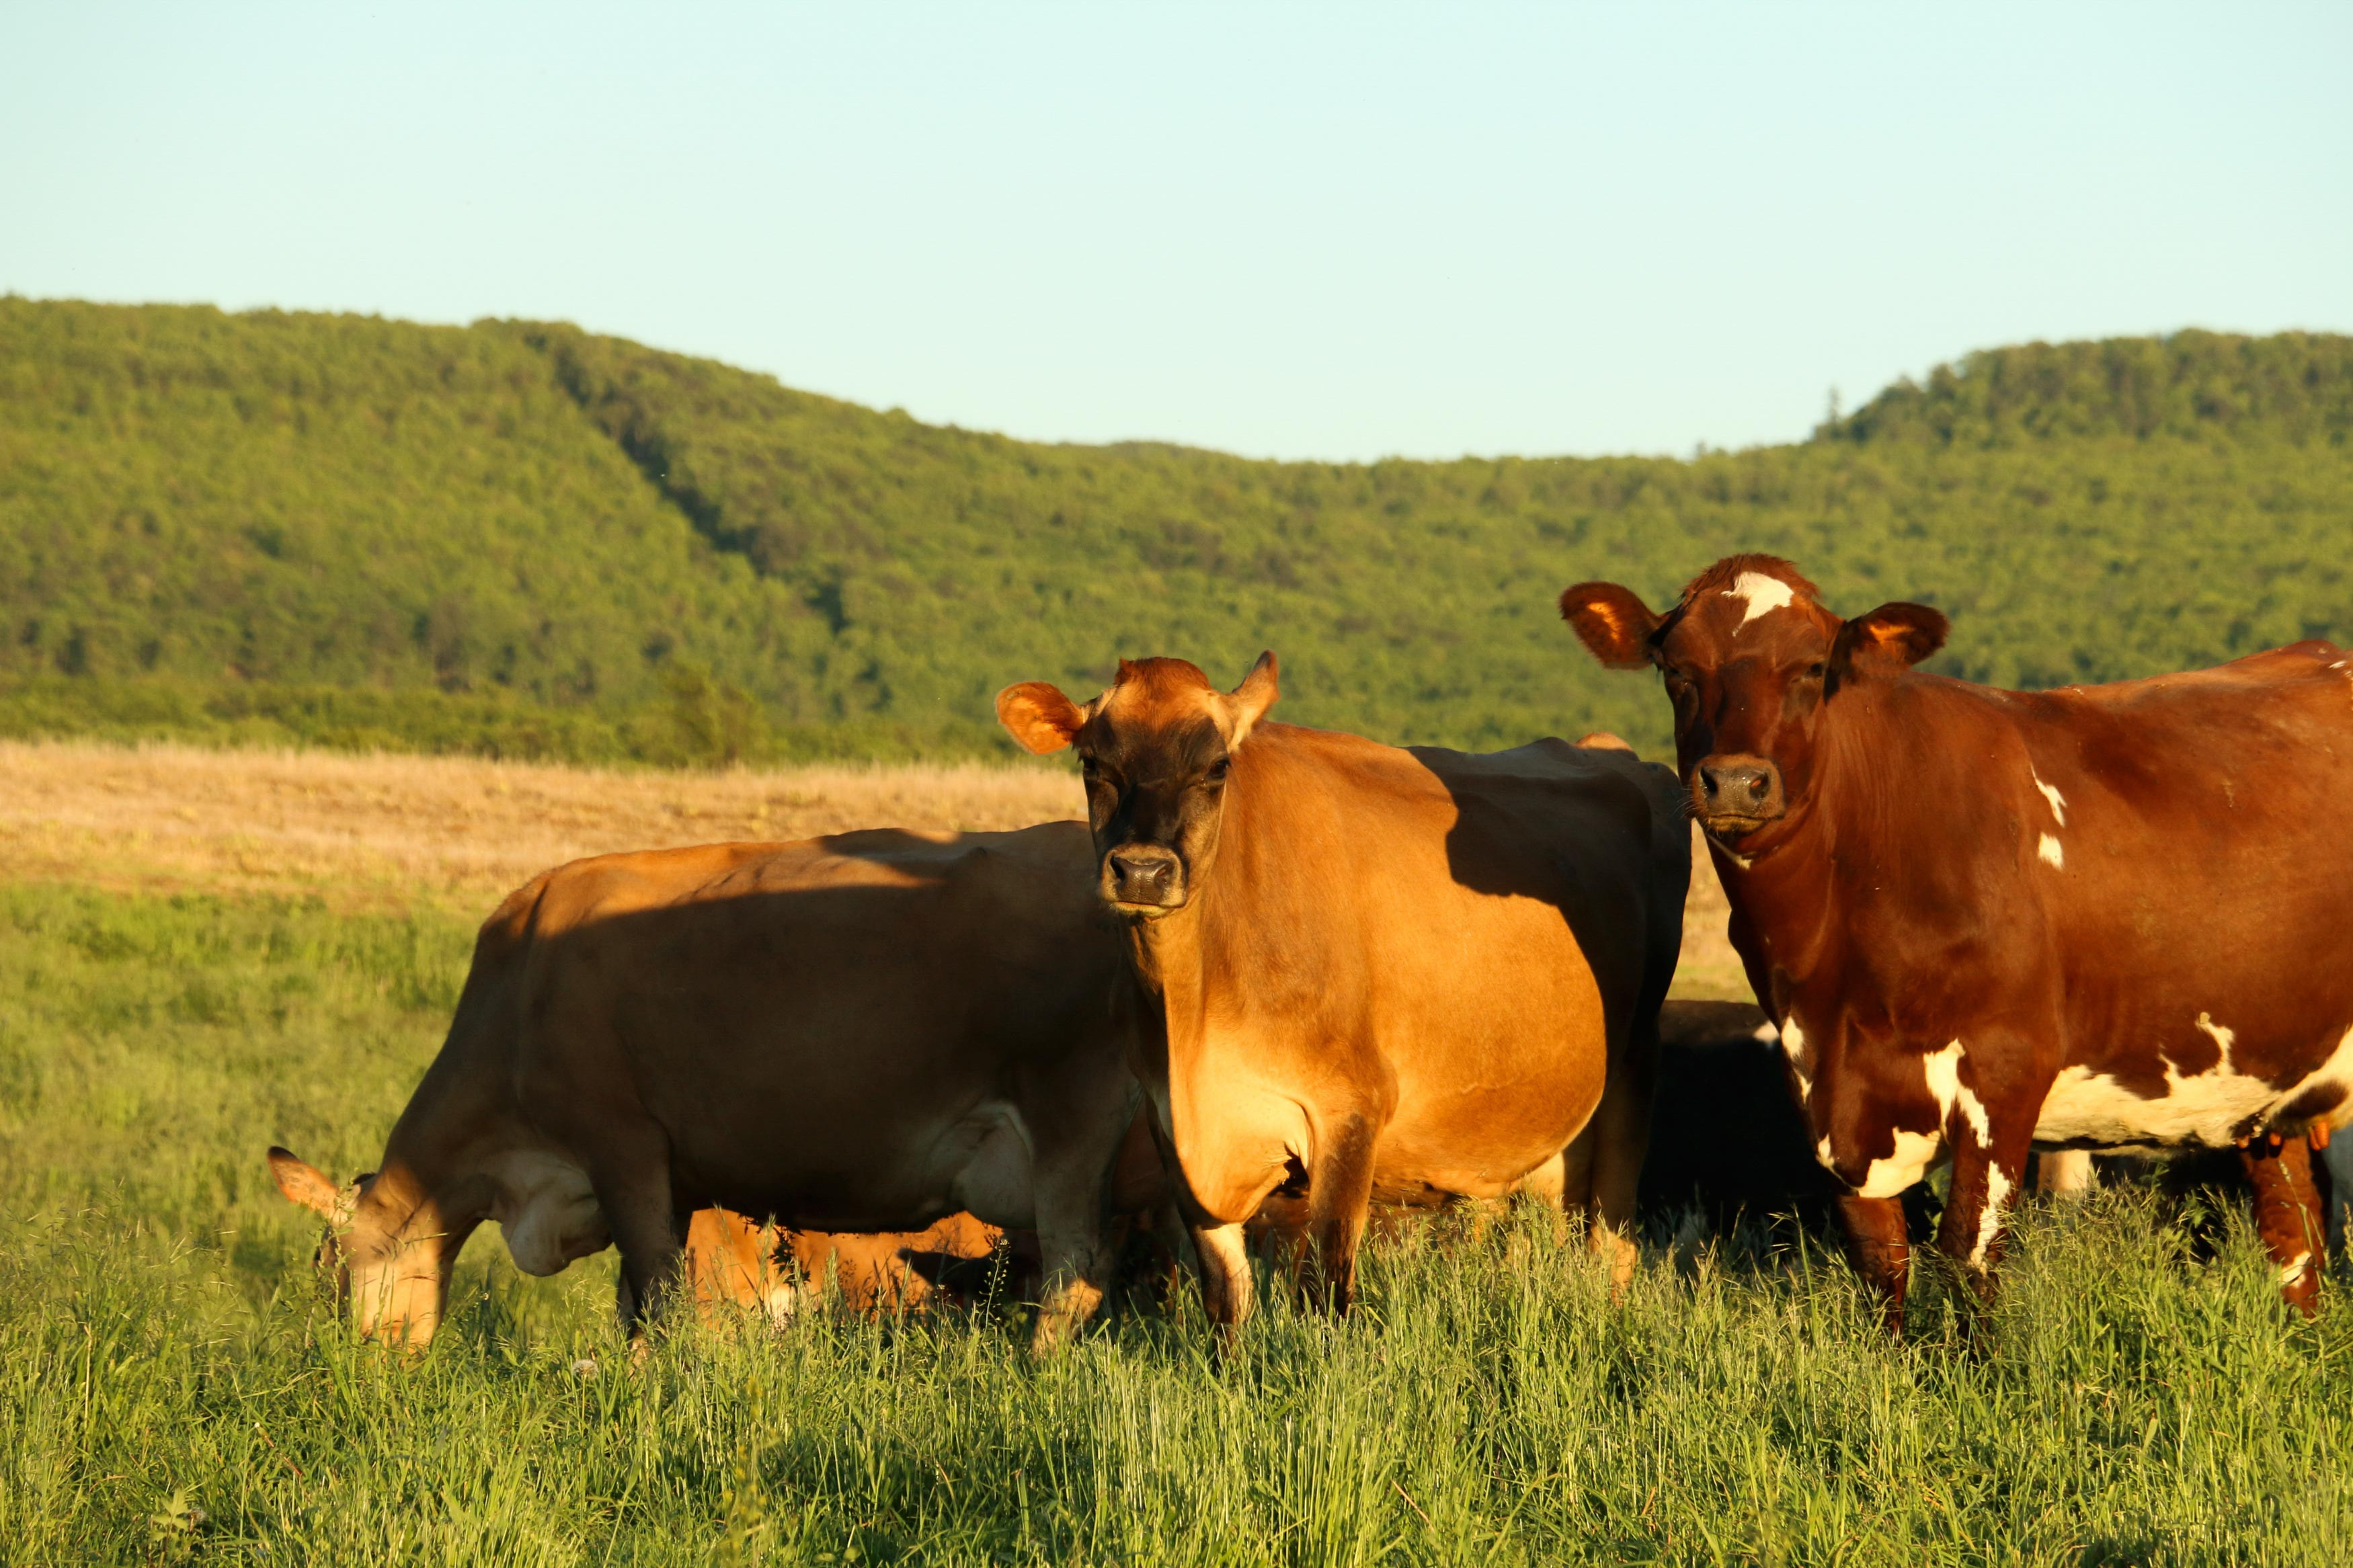 Grass-fed, Jersey cows enjoying their pasture